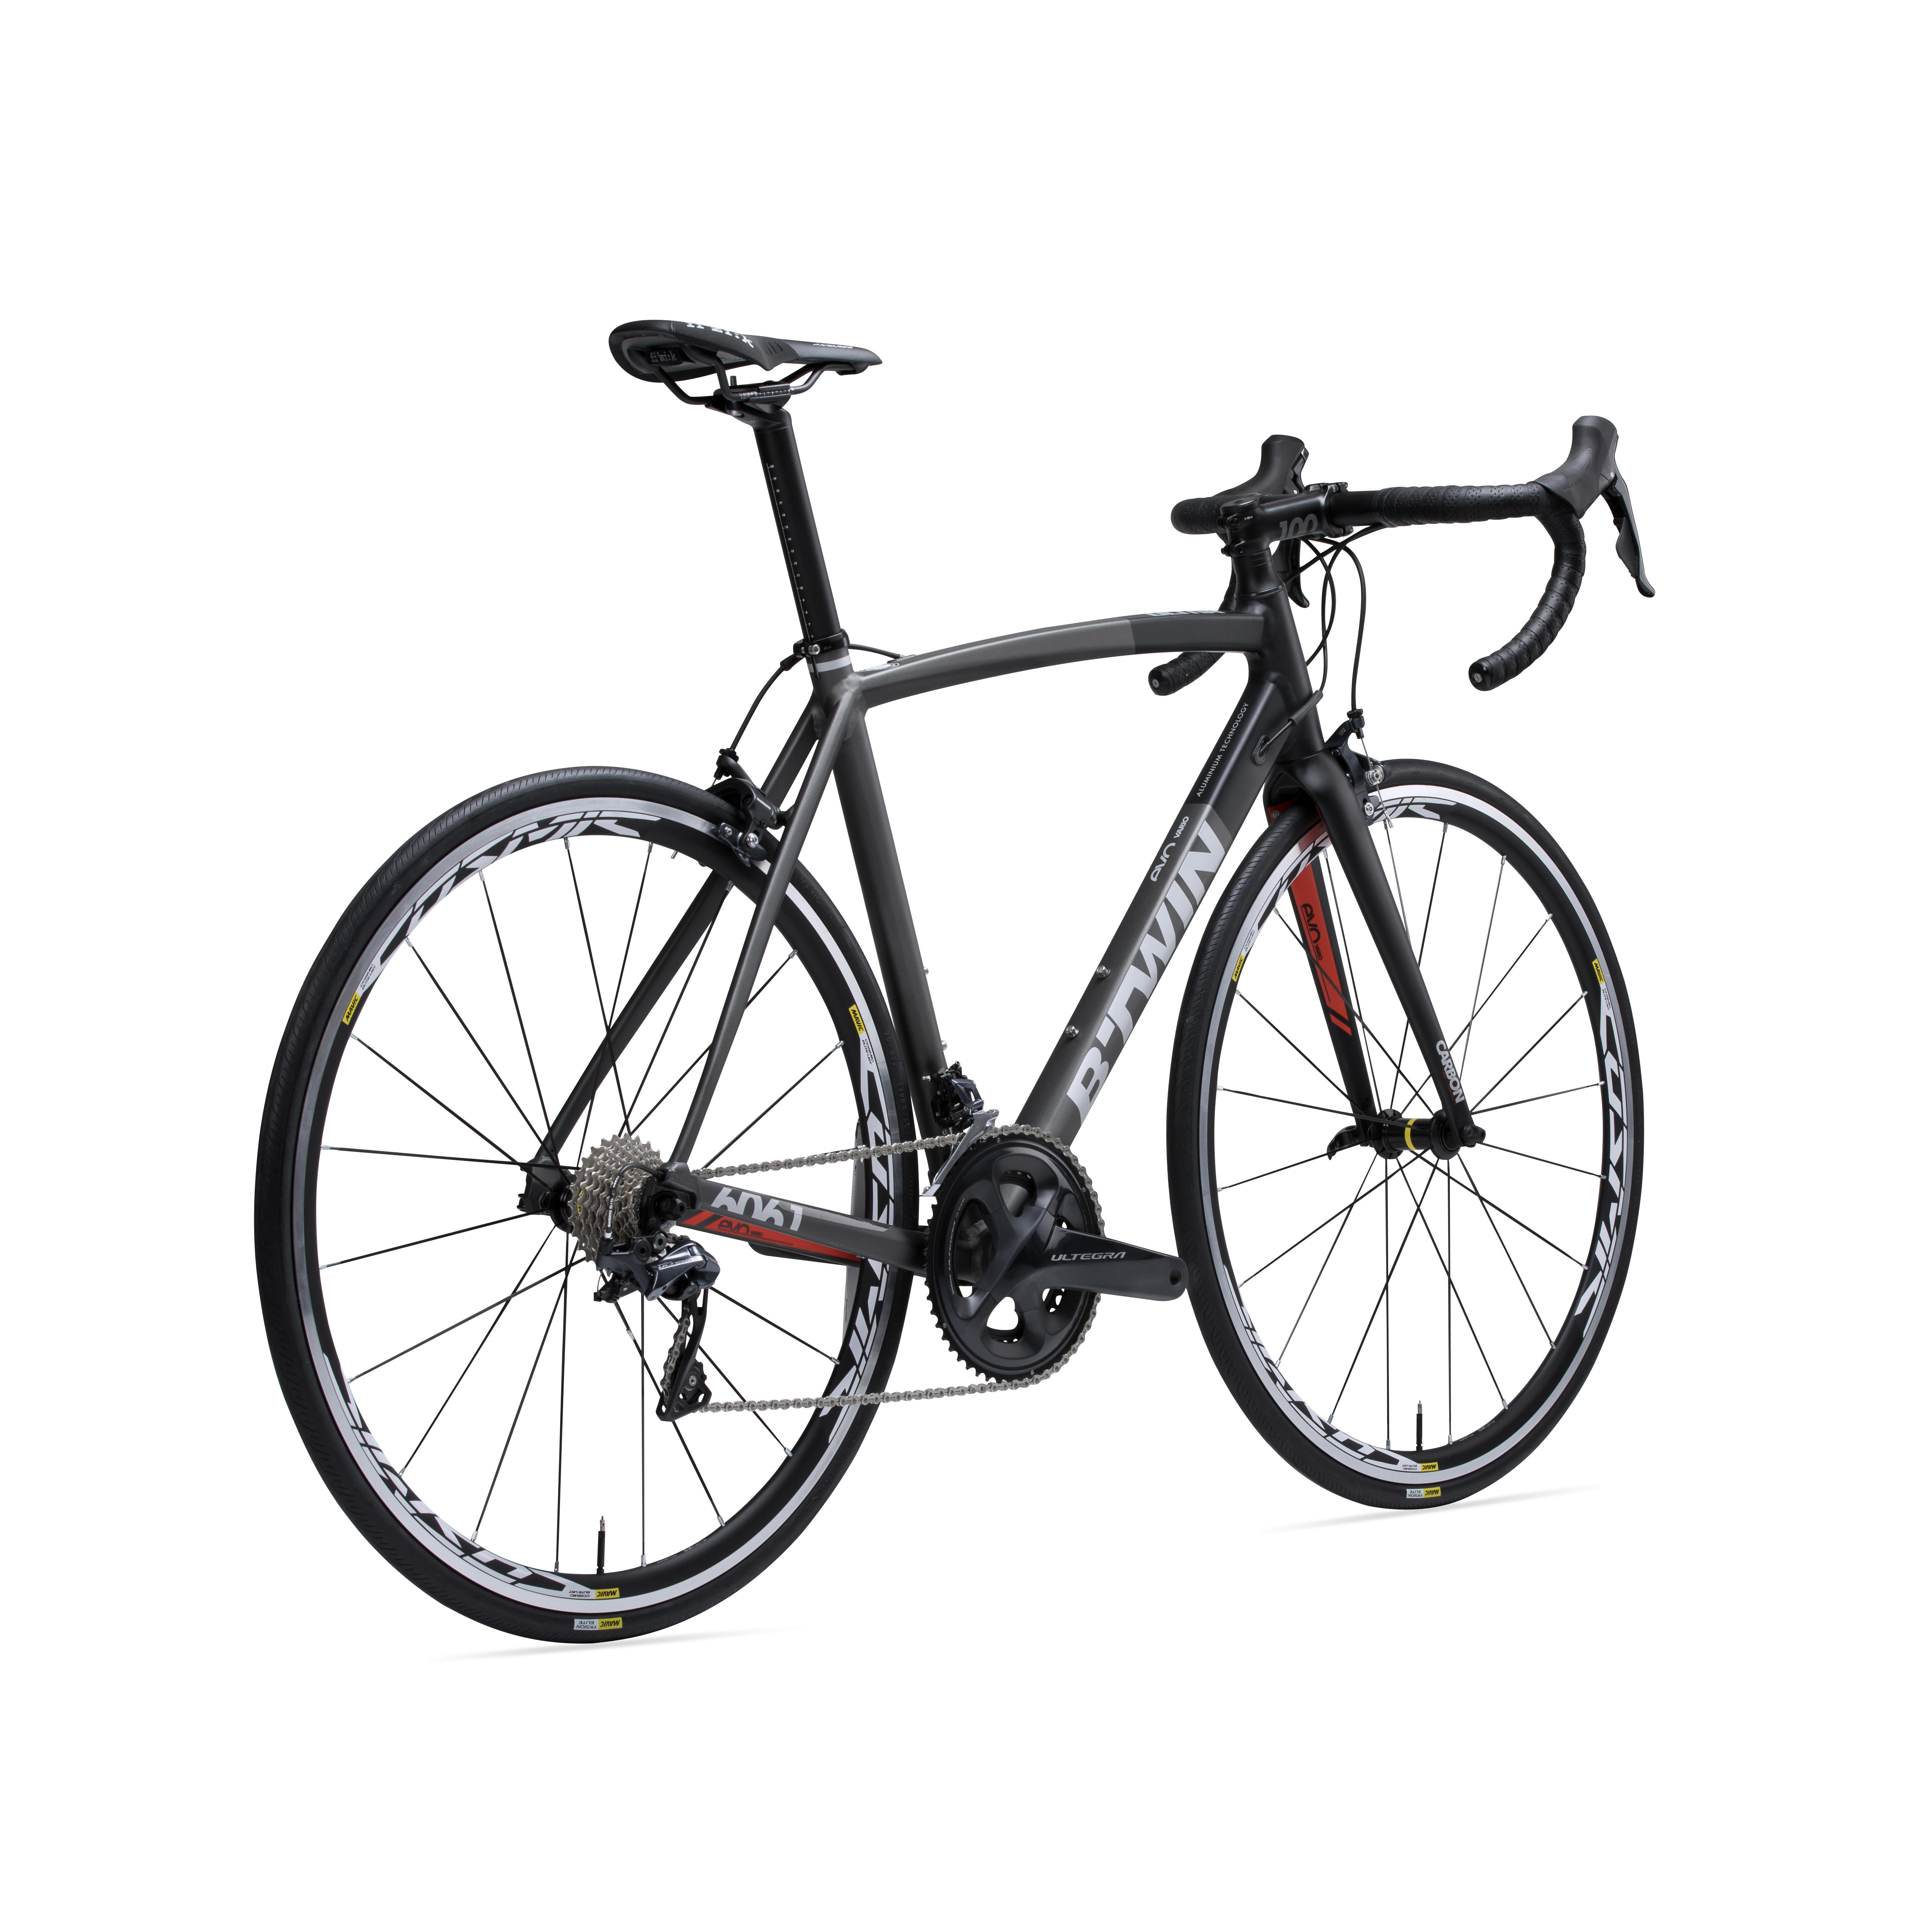 VÉLO ROUTE BTWIN ULTRA 920 AF